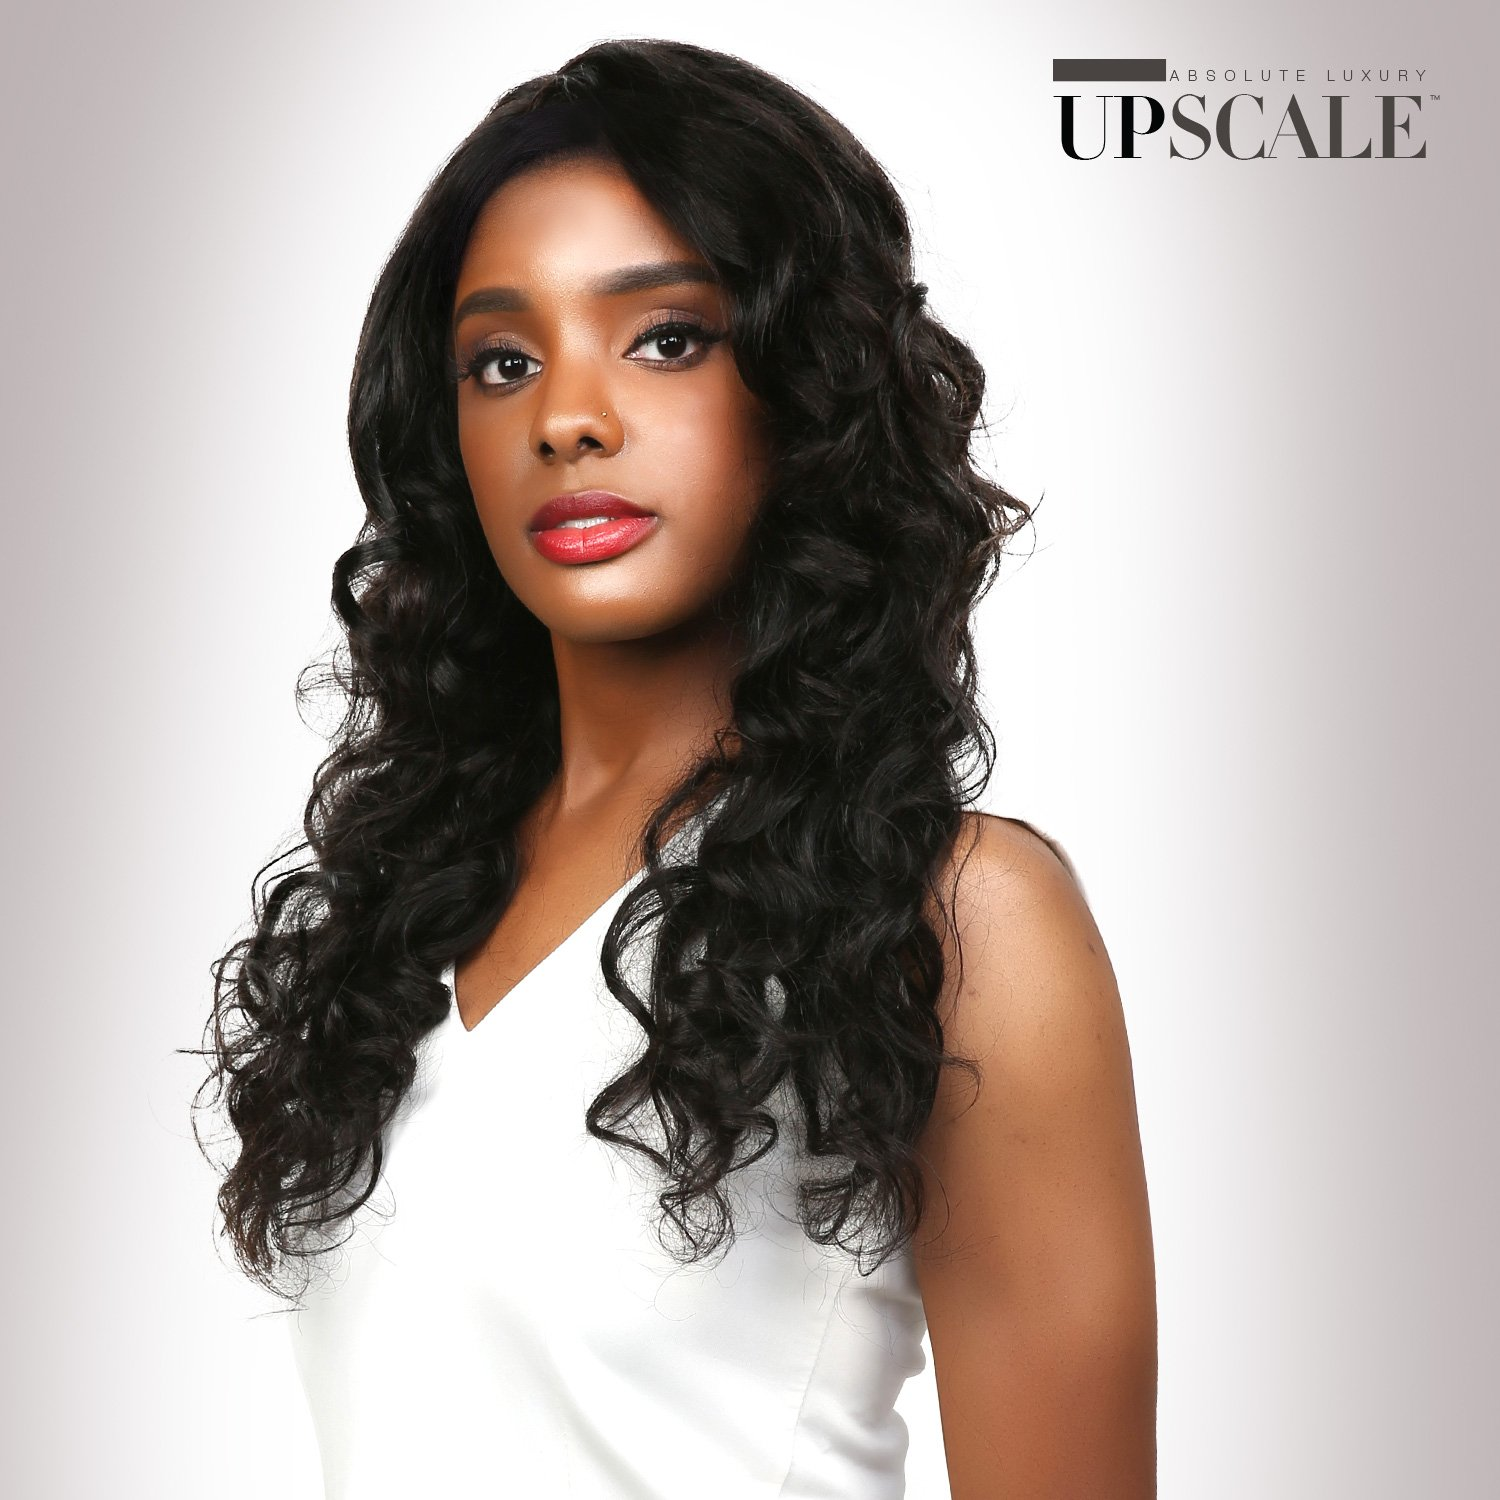 UpScale 100% Virgin Remi Human Hair Lace Front Wig Various Styles of Deep Part Lace Wig in Natural Color